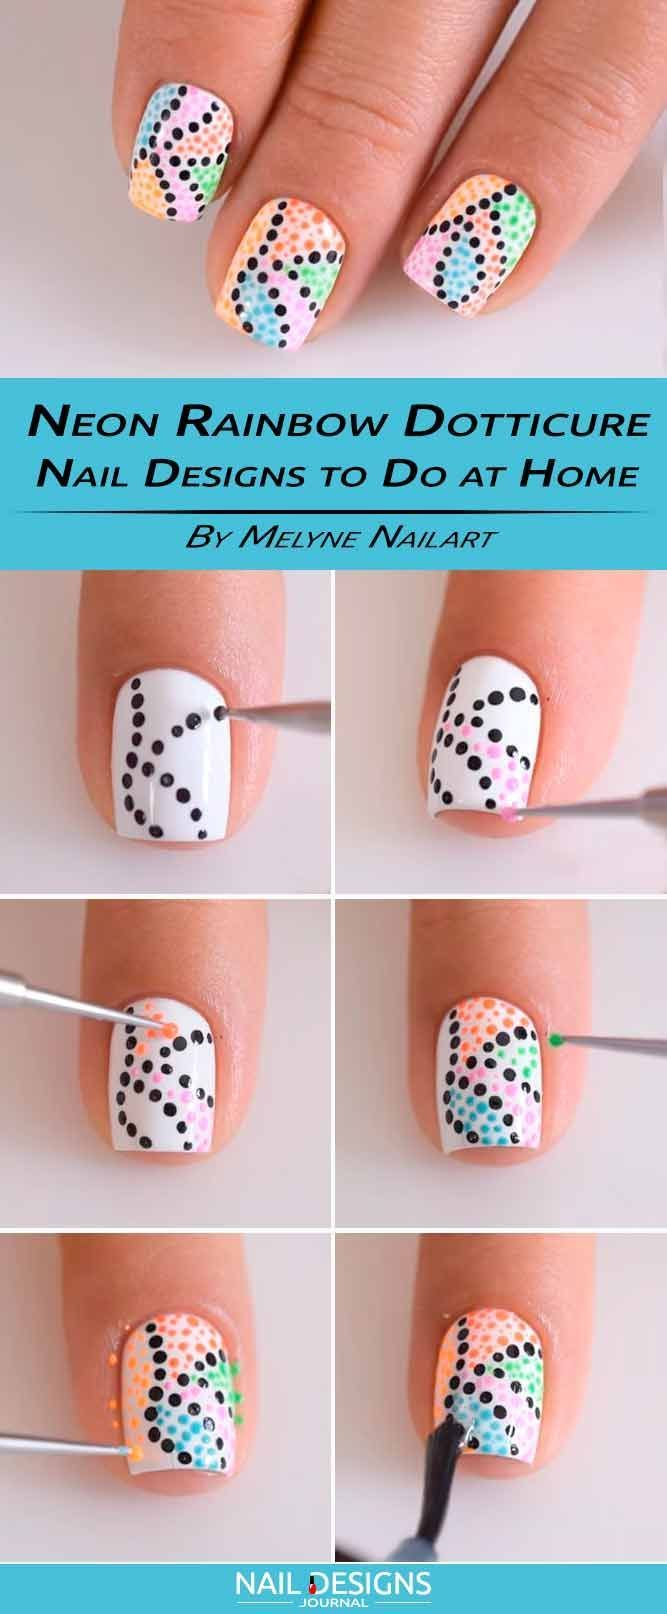 How To Do Nail Designs At Home? ☆ See More: Https://